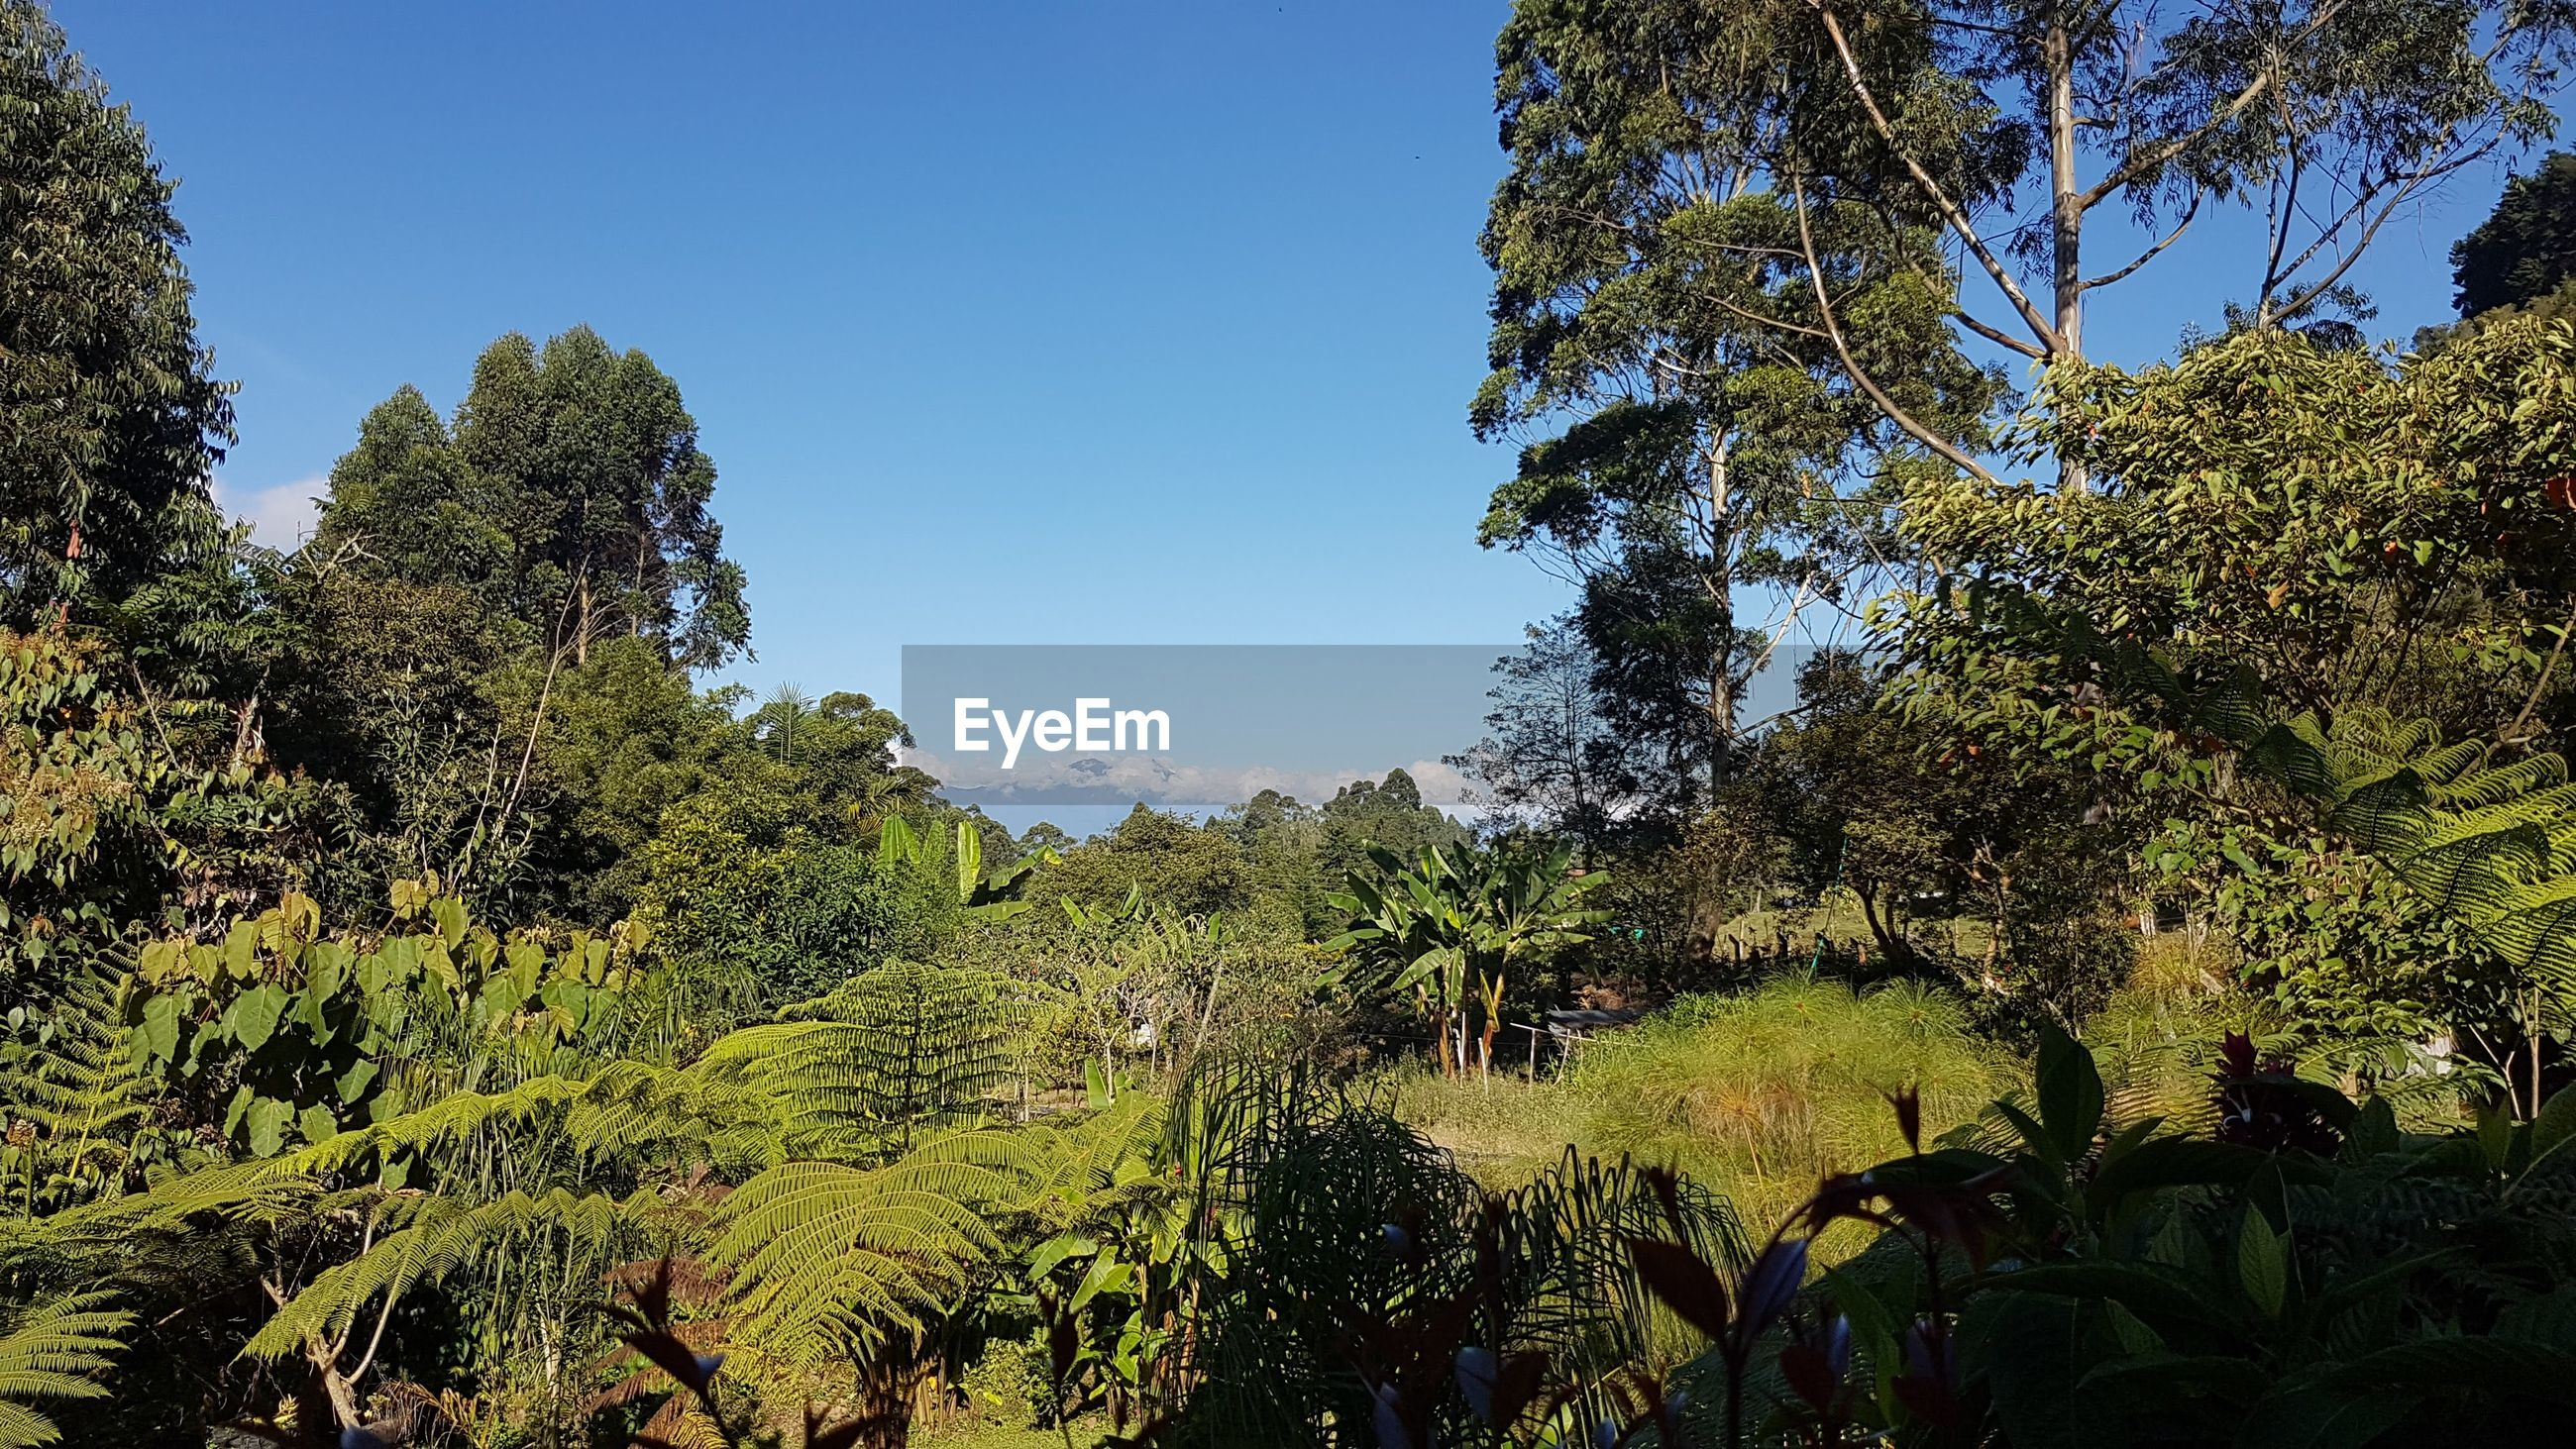 PLANTS GROWING ON LAND AGAINST CLEAR SKY